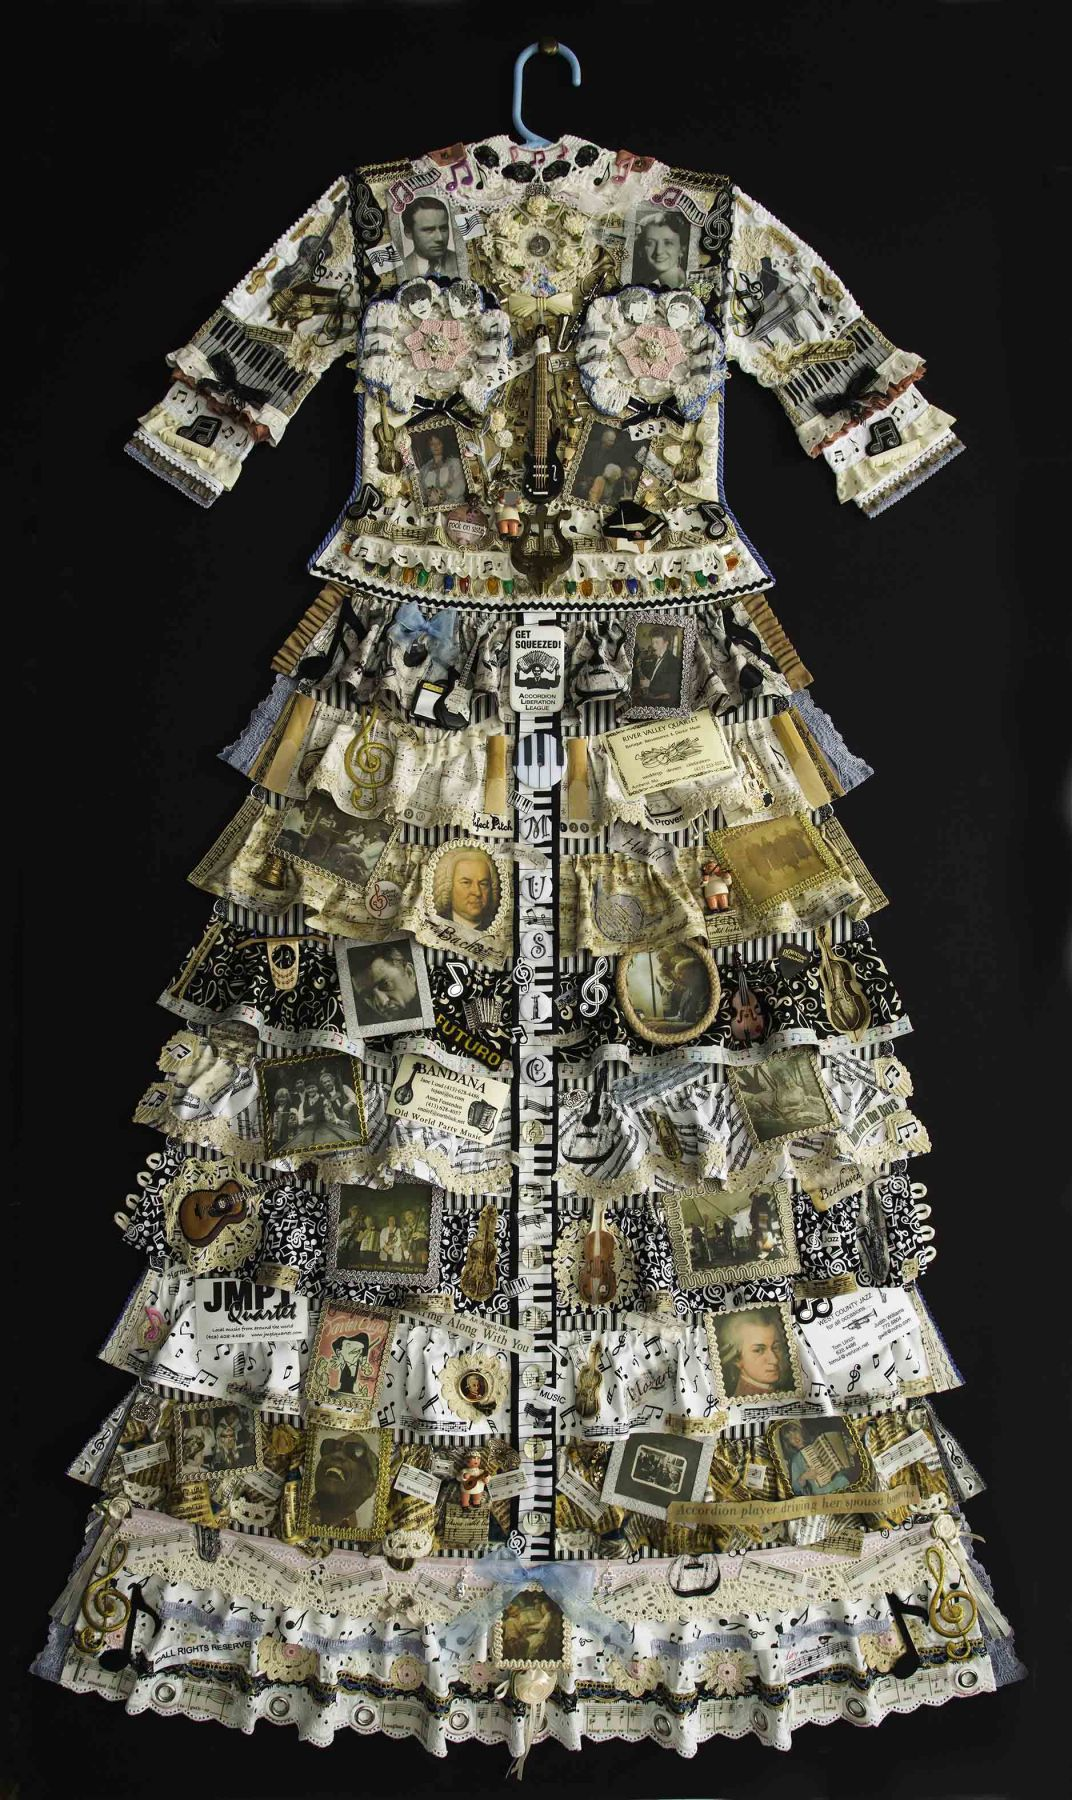 Jane Lund, Music Dress, 2015, assemblage of collected objects, 59 x 33 inches